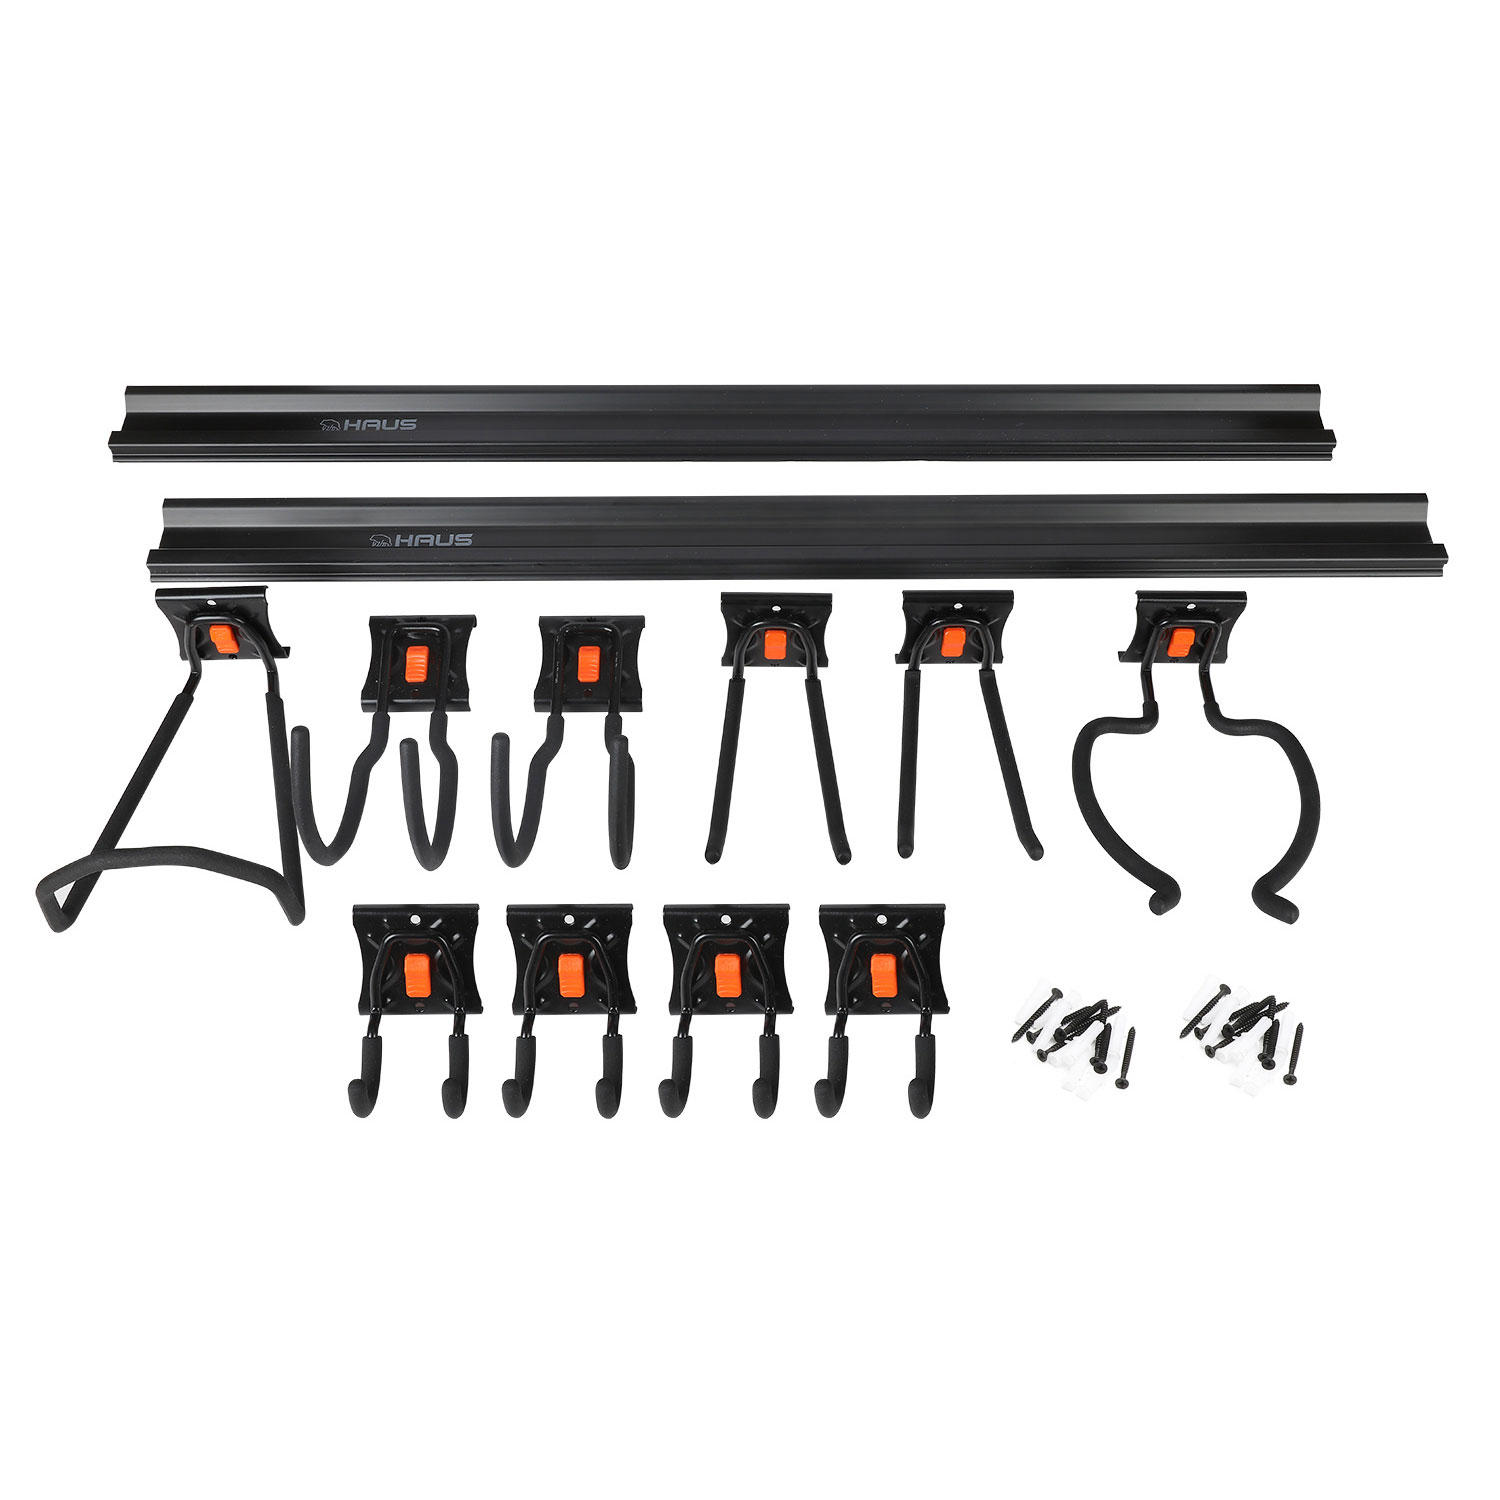 Haus 12-Piece Garage Organization Kit